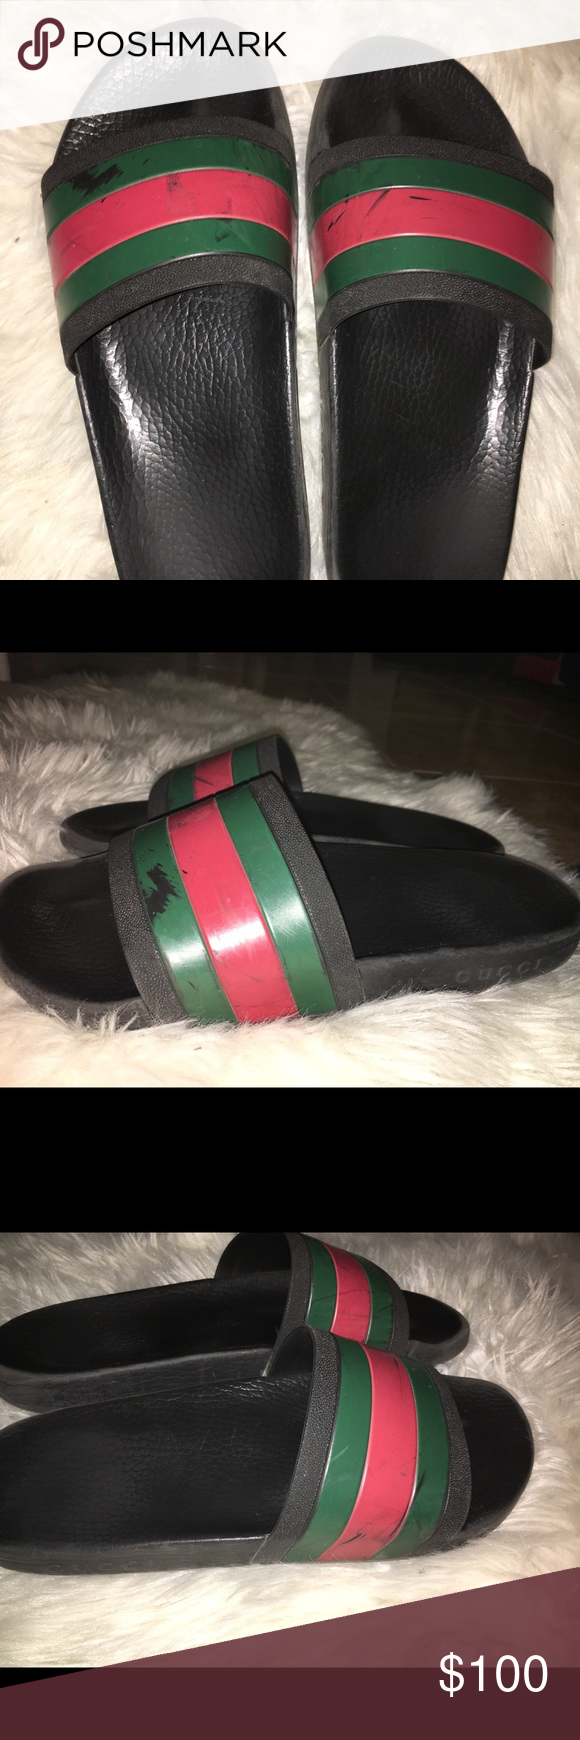 286c7a2bf42f32 Gucci Flip Flops Size 10 Men. Comes with the OG box. Has Scuffs but can be  easily refurbished. Price is Low due to wear. Gucci Shoes Sandals